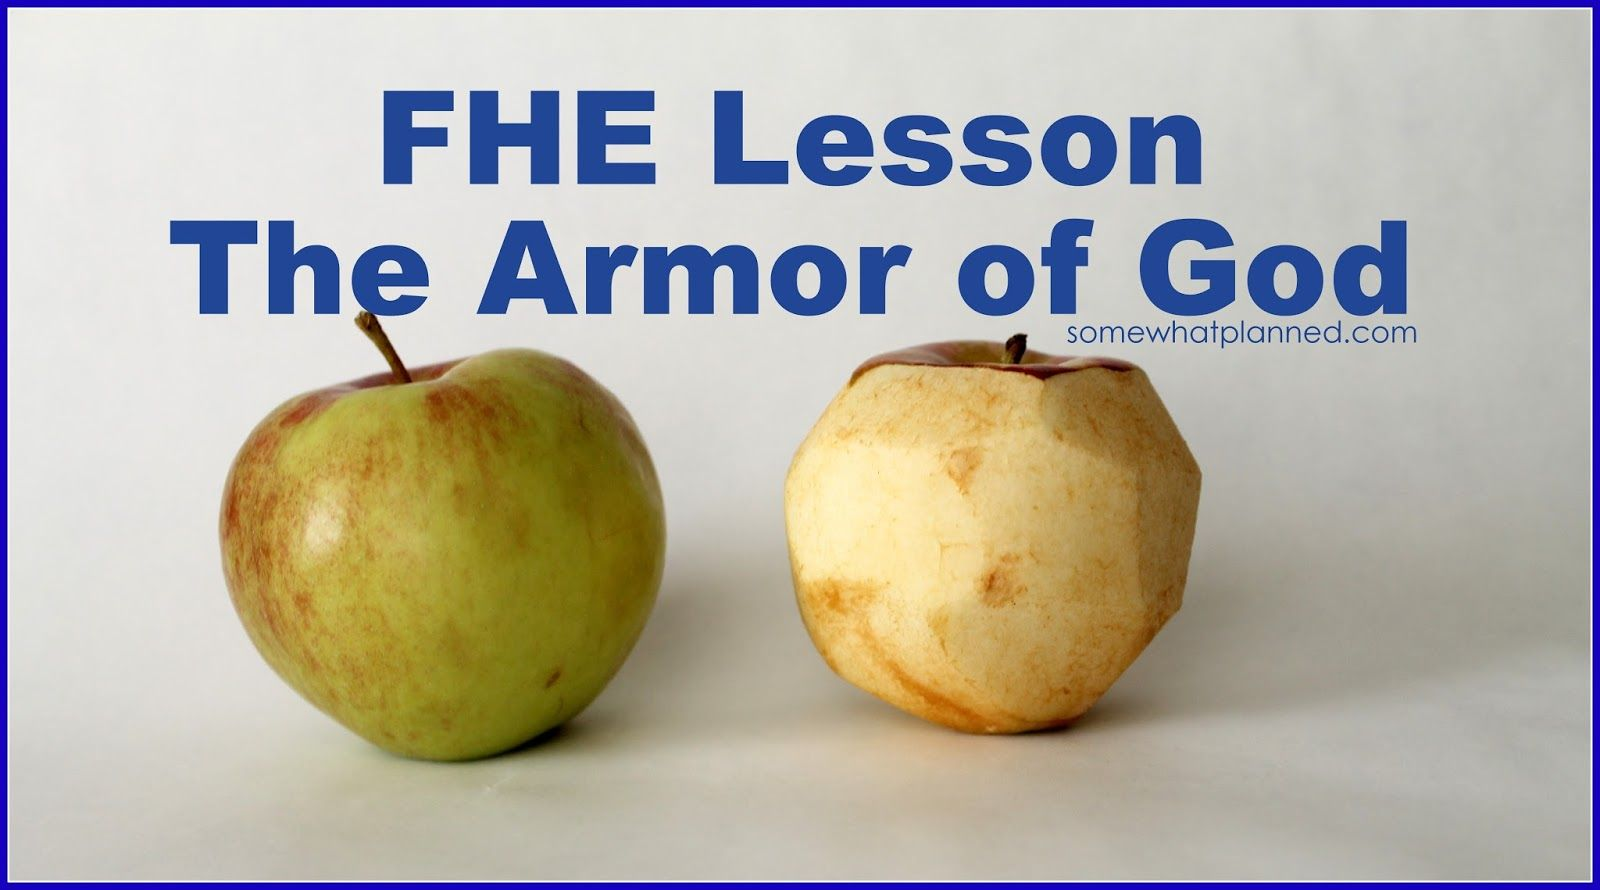 Pin by Linda Annett on Teens | Armor of god, Fhe lessons